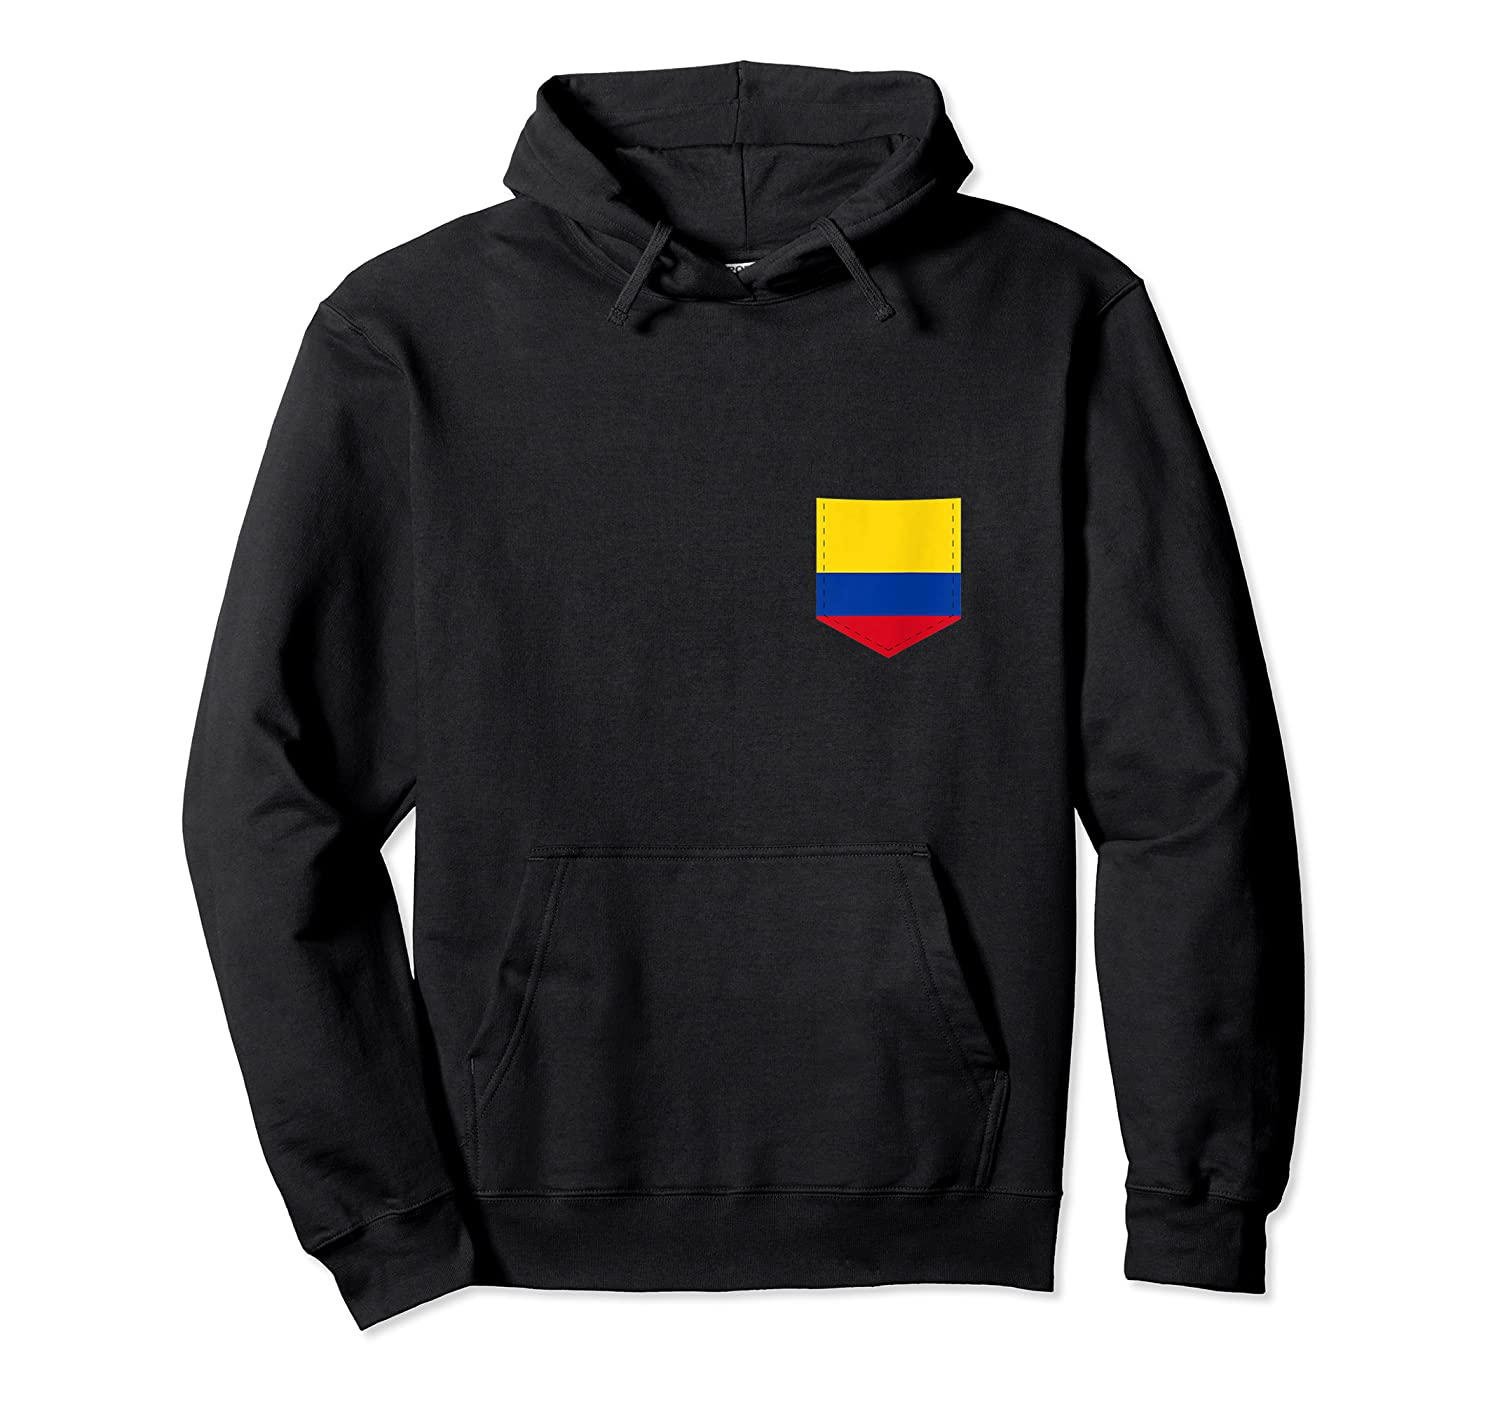 Colombia Flag Design With Printed Colombian Flag Pocket Tank Top Shirts Unisex Pullover Hoodie